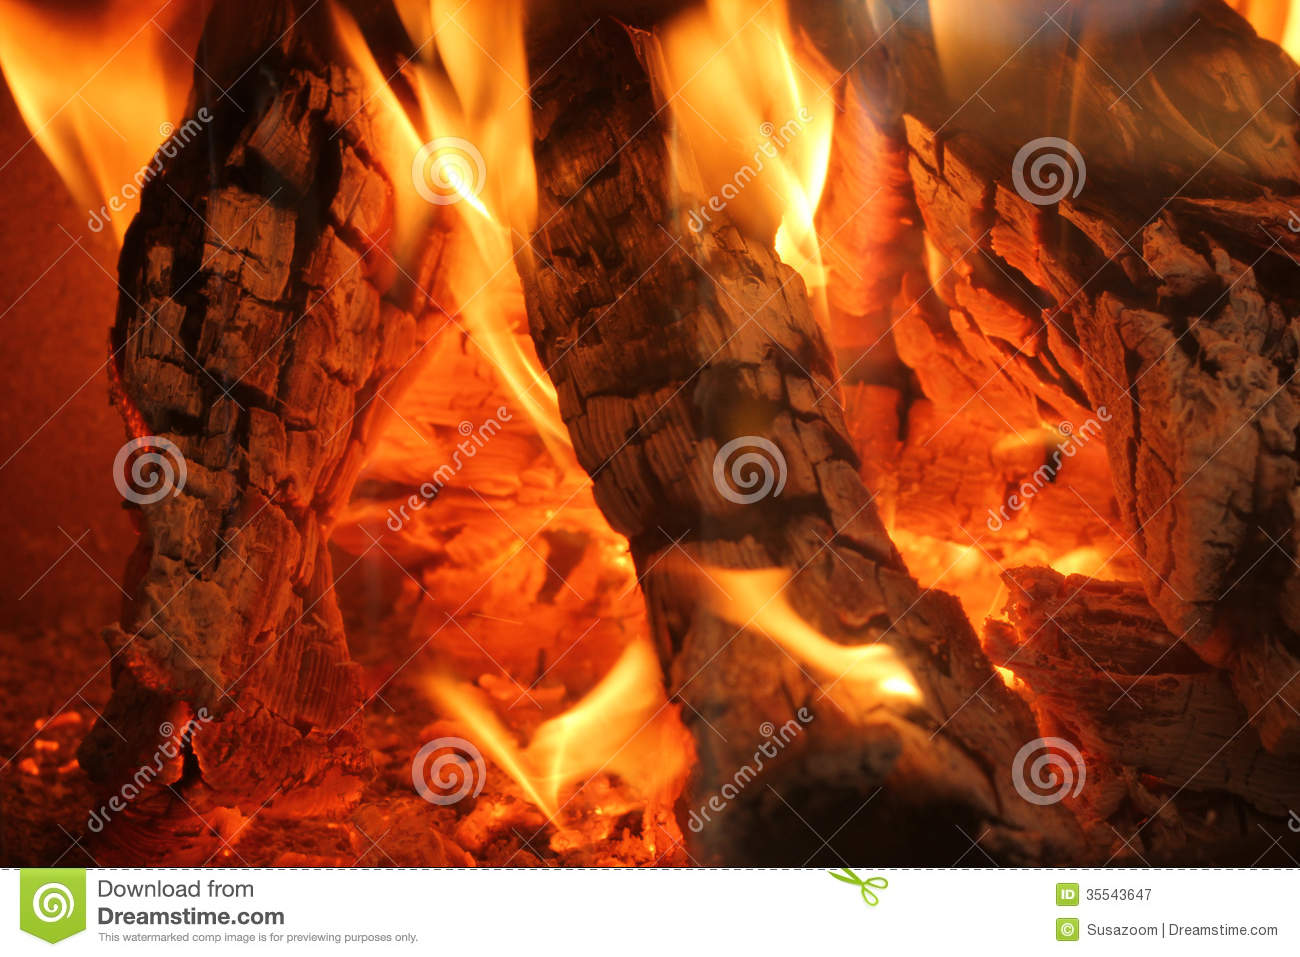 Burning Logs In A Chimney Fire Royalty Free Stock